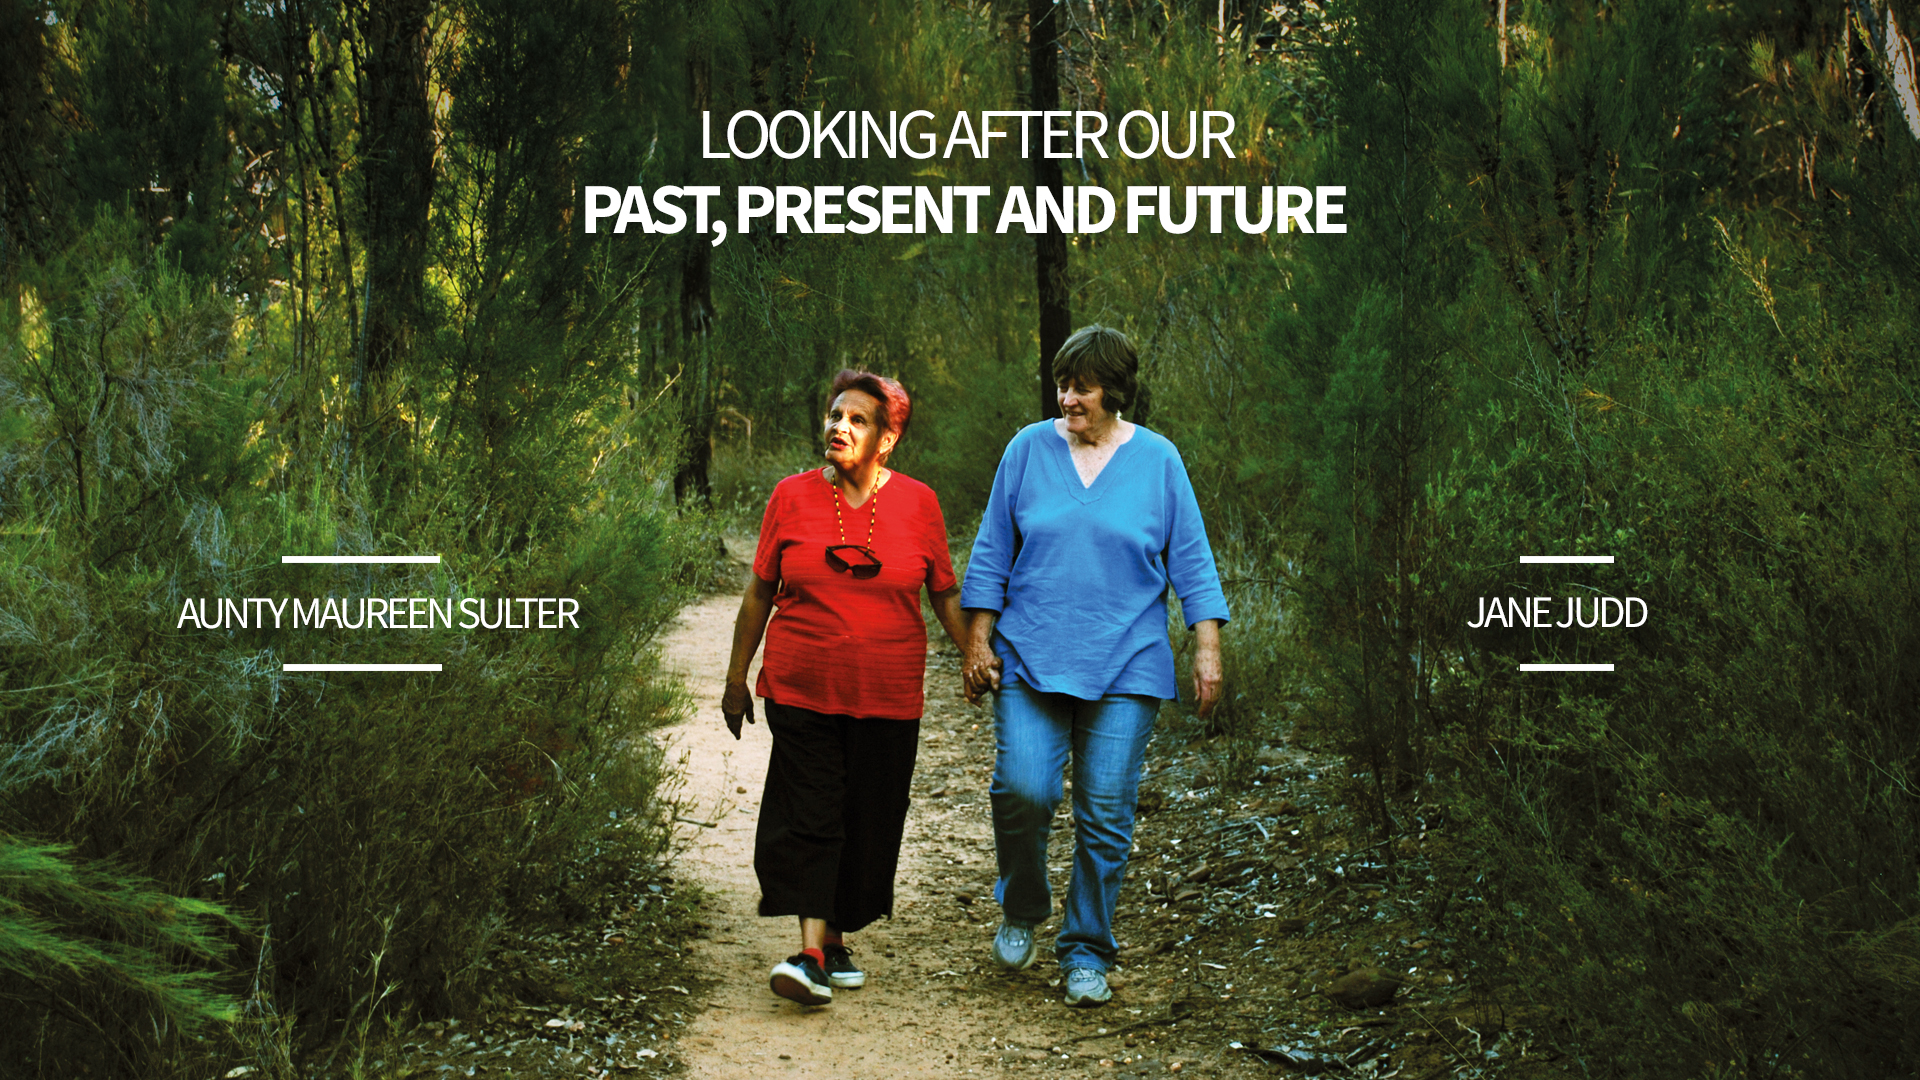 Looking After Our Past, Present and Future - The largest temperate woodland in eastern Australia